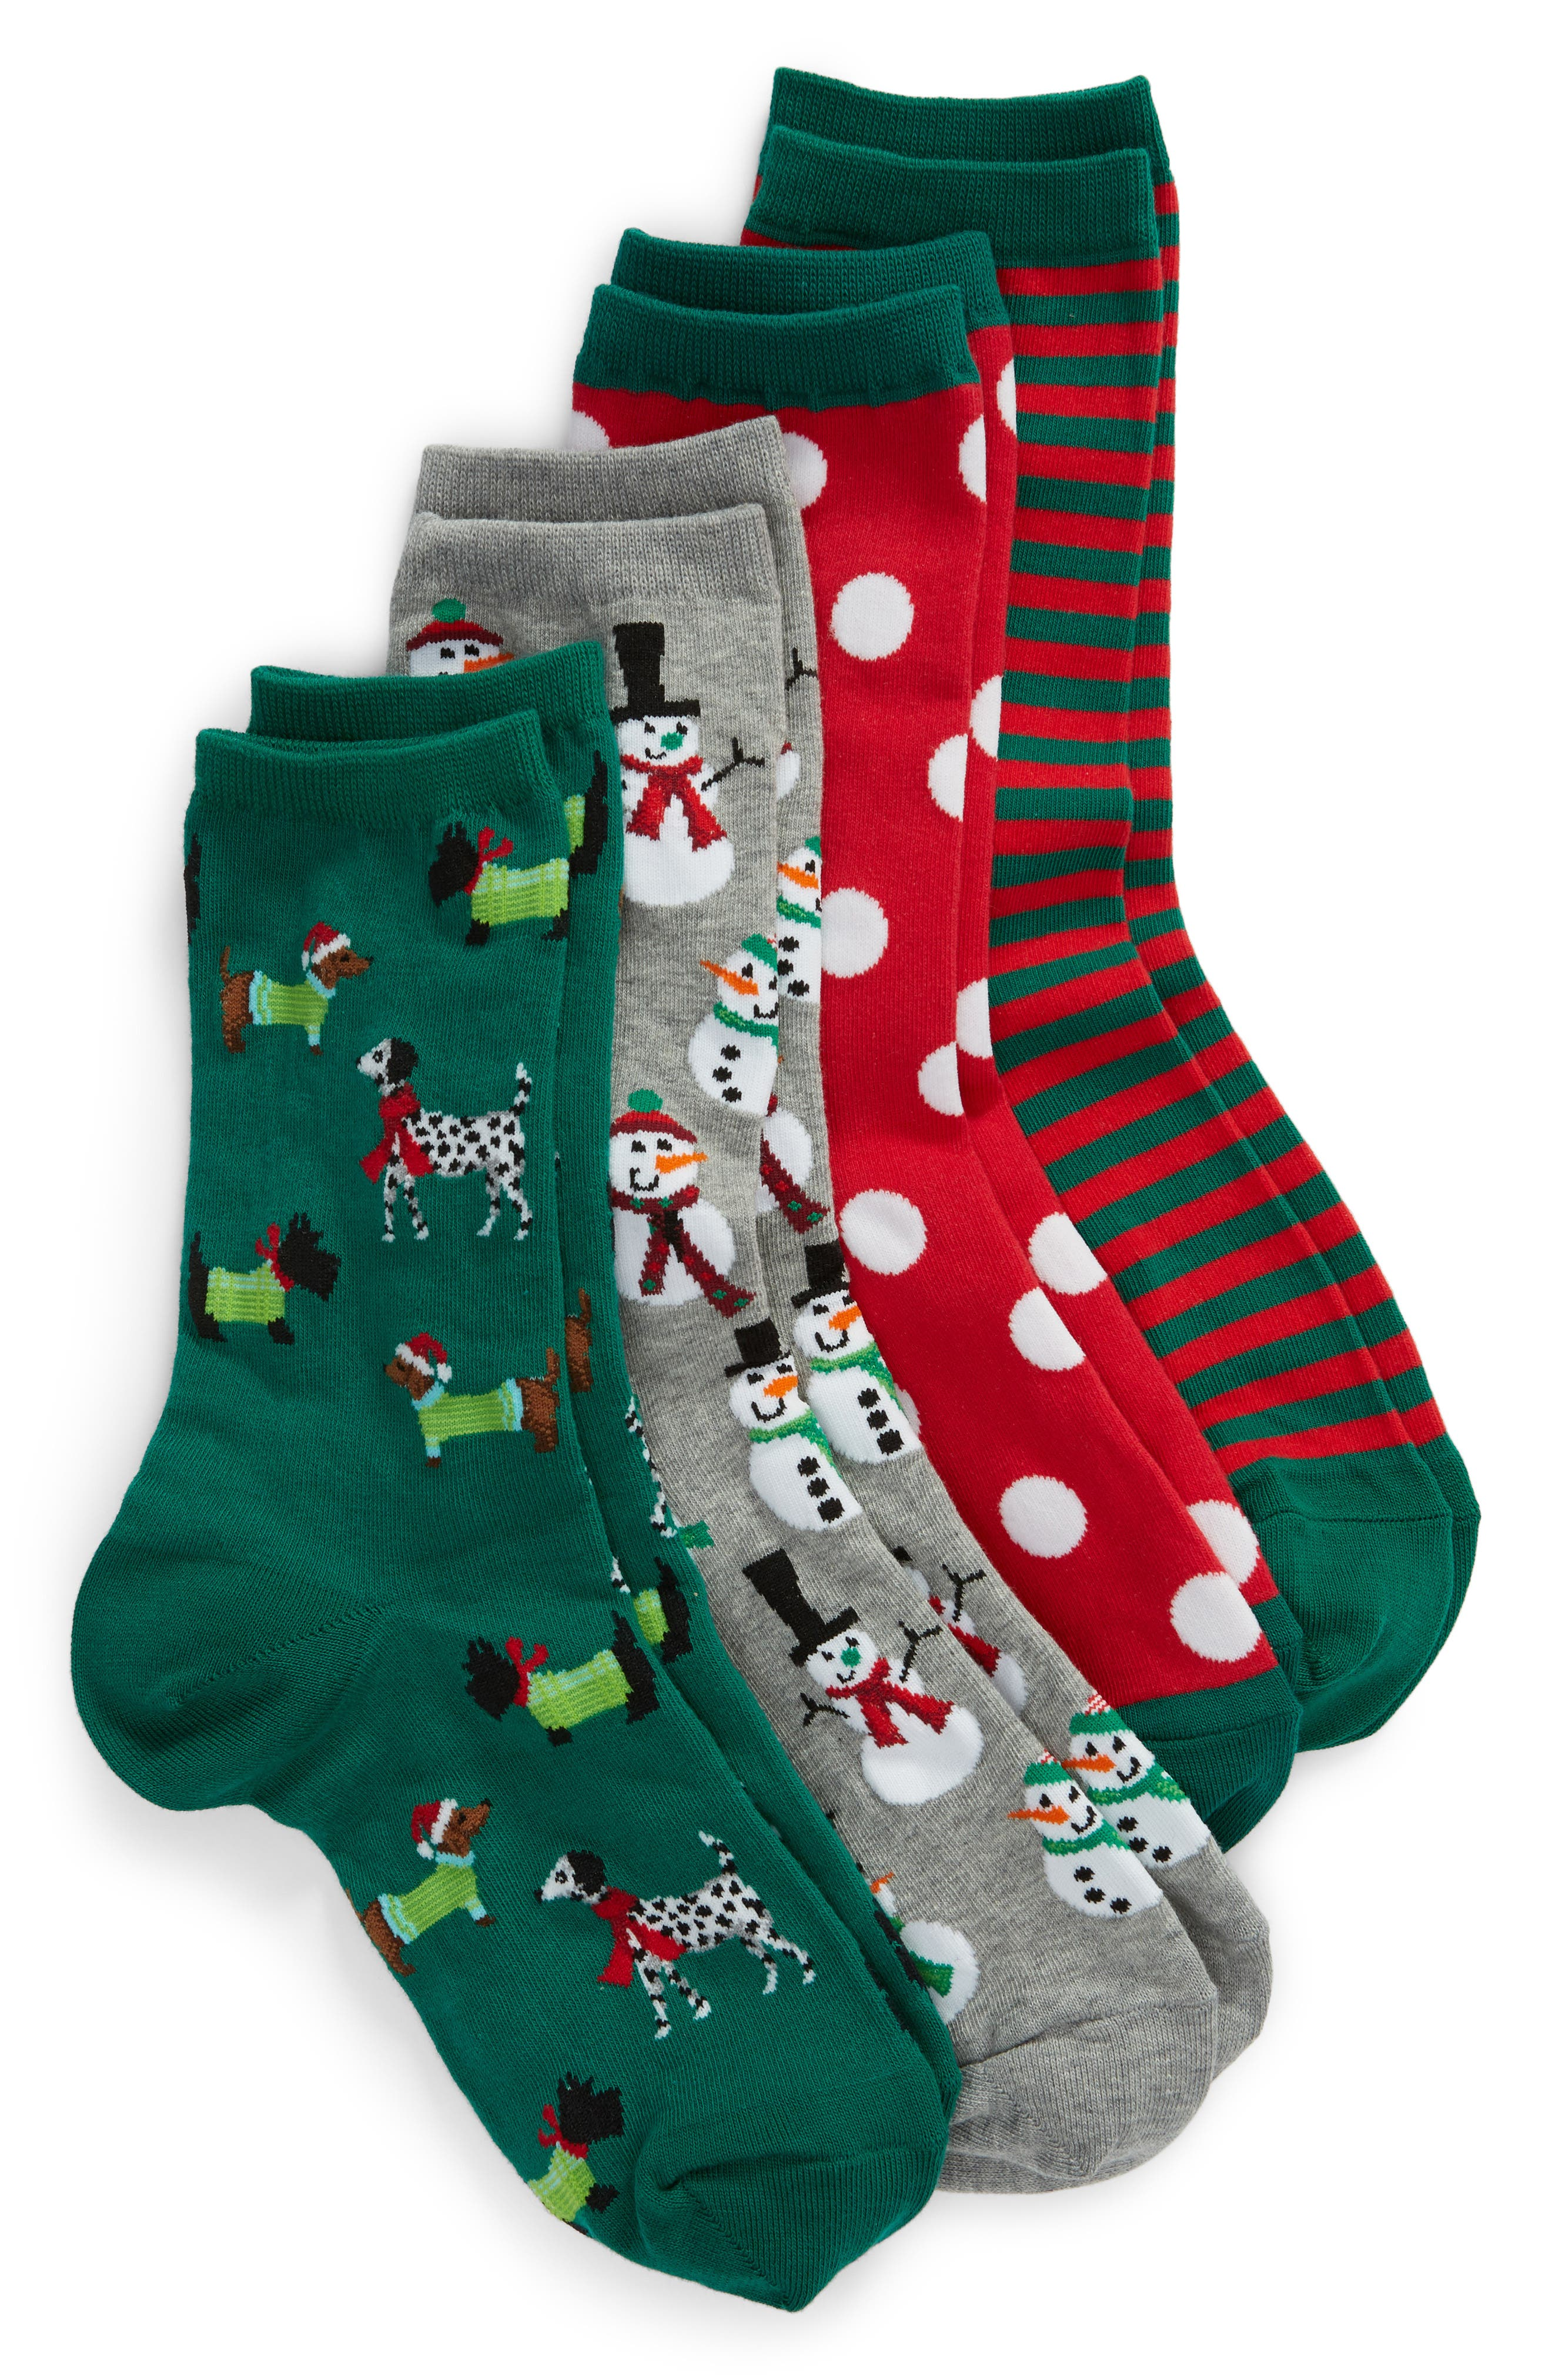 4-Pack Holiday Snowmen 4-Pack Socks in Red